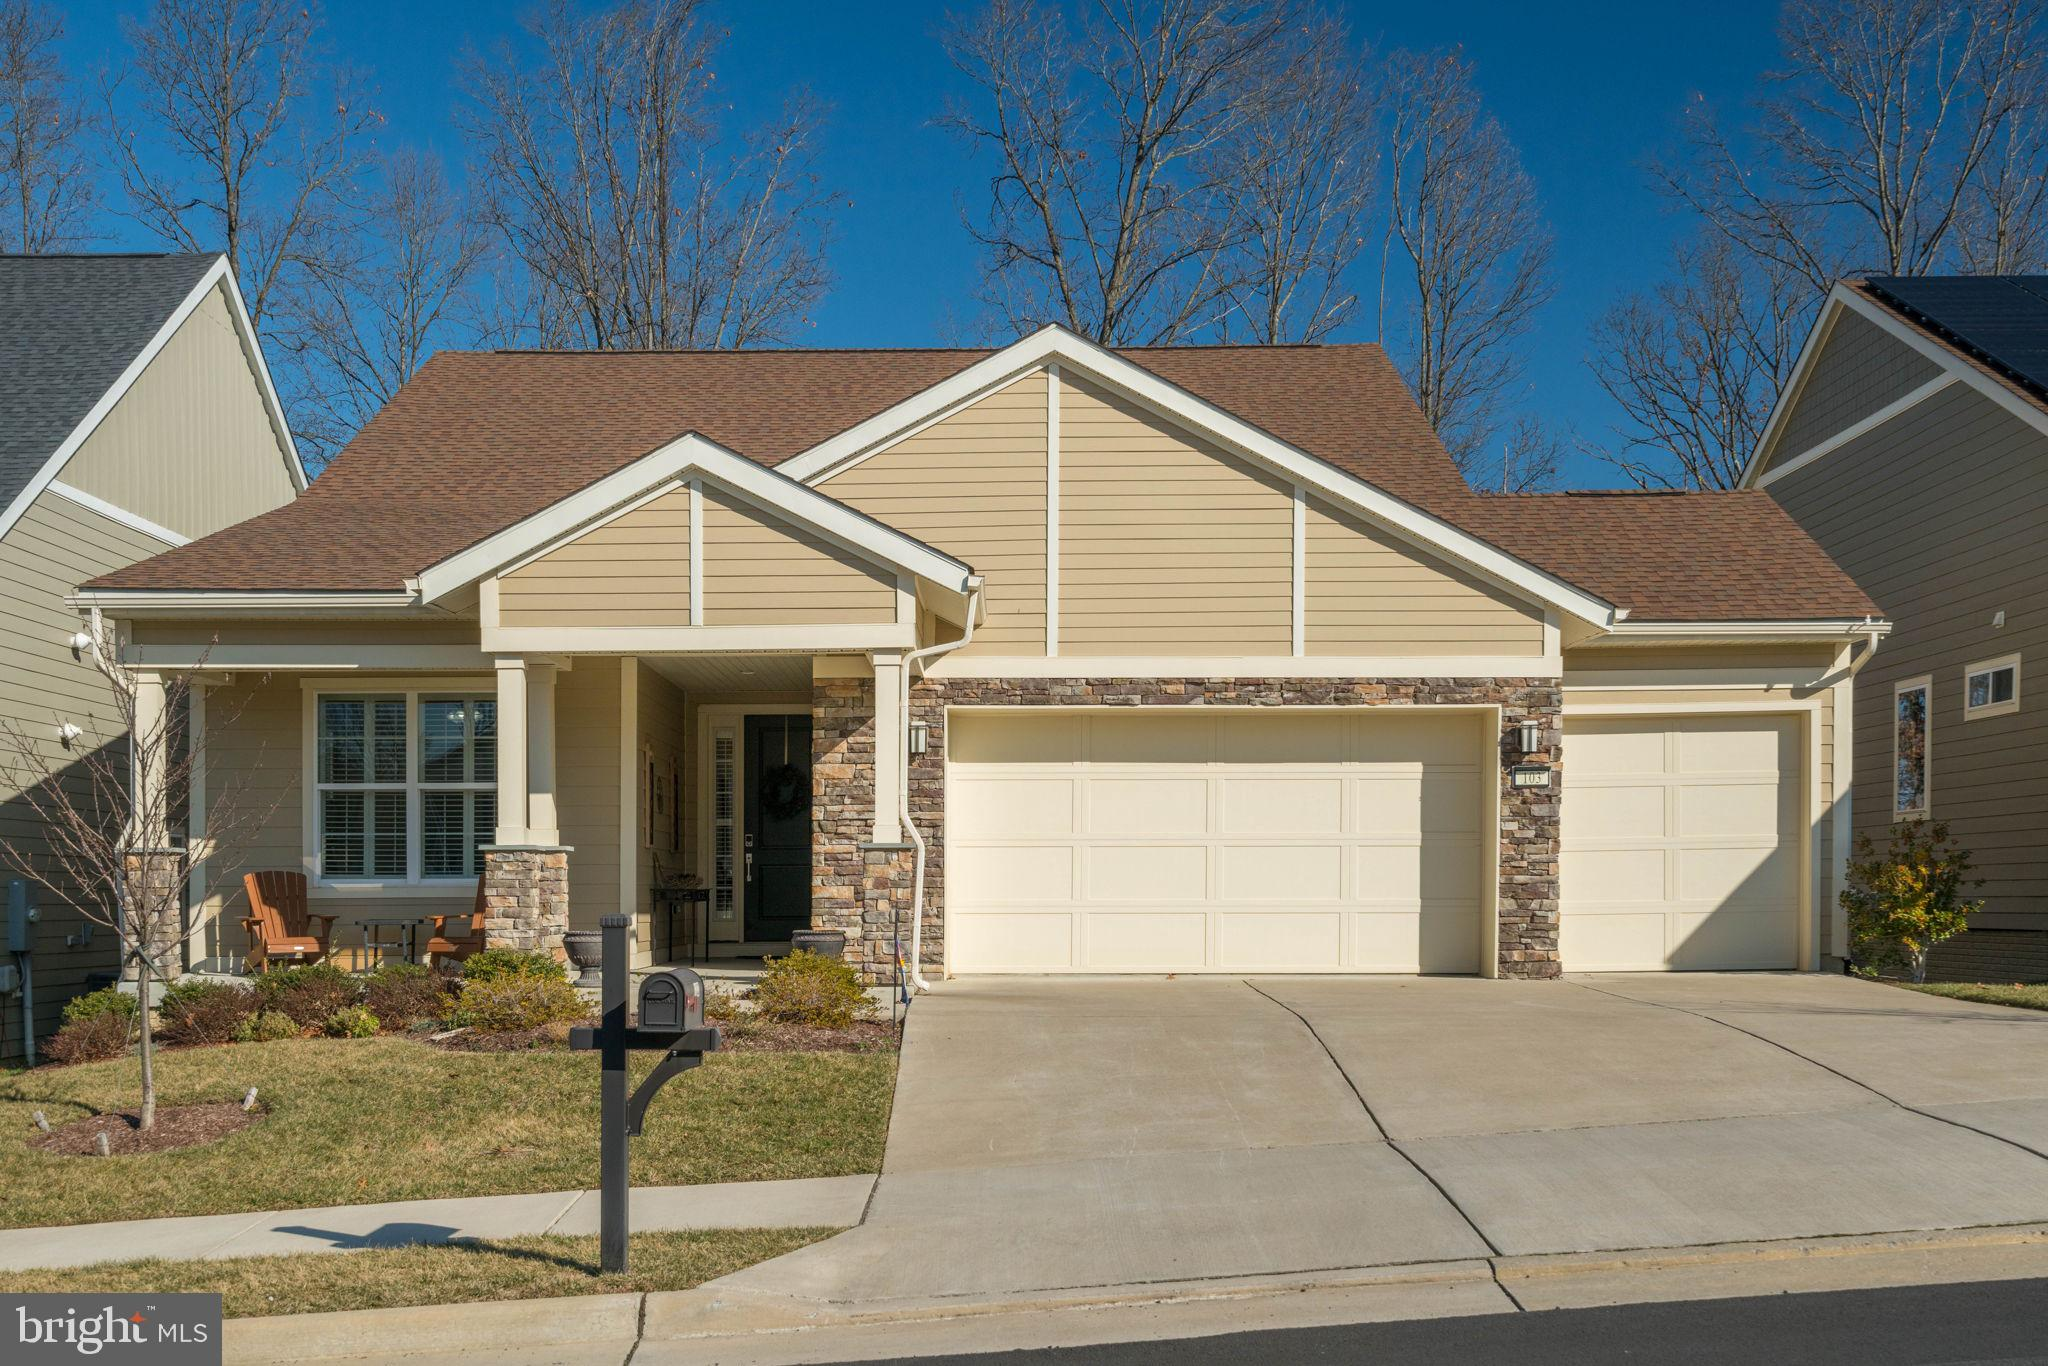 Your wait is over! Welcome Home to this stunning Craftsman style home with desired main level living